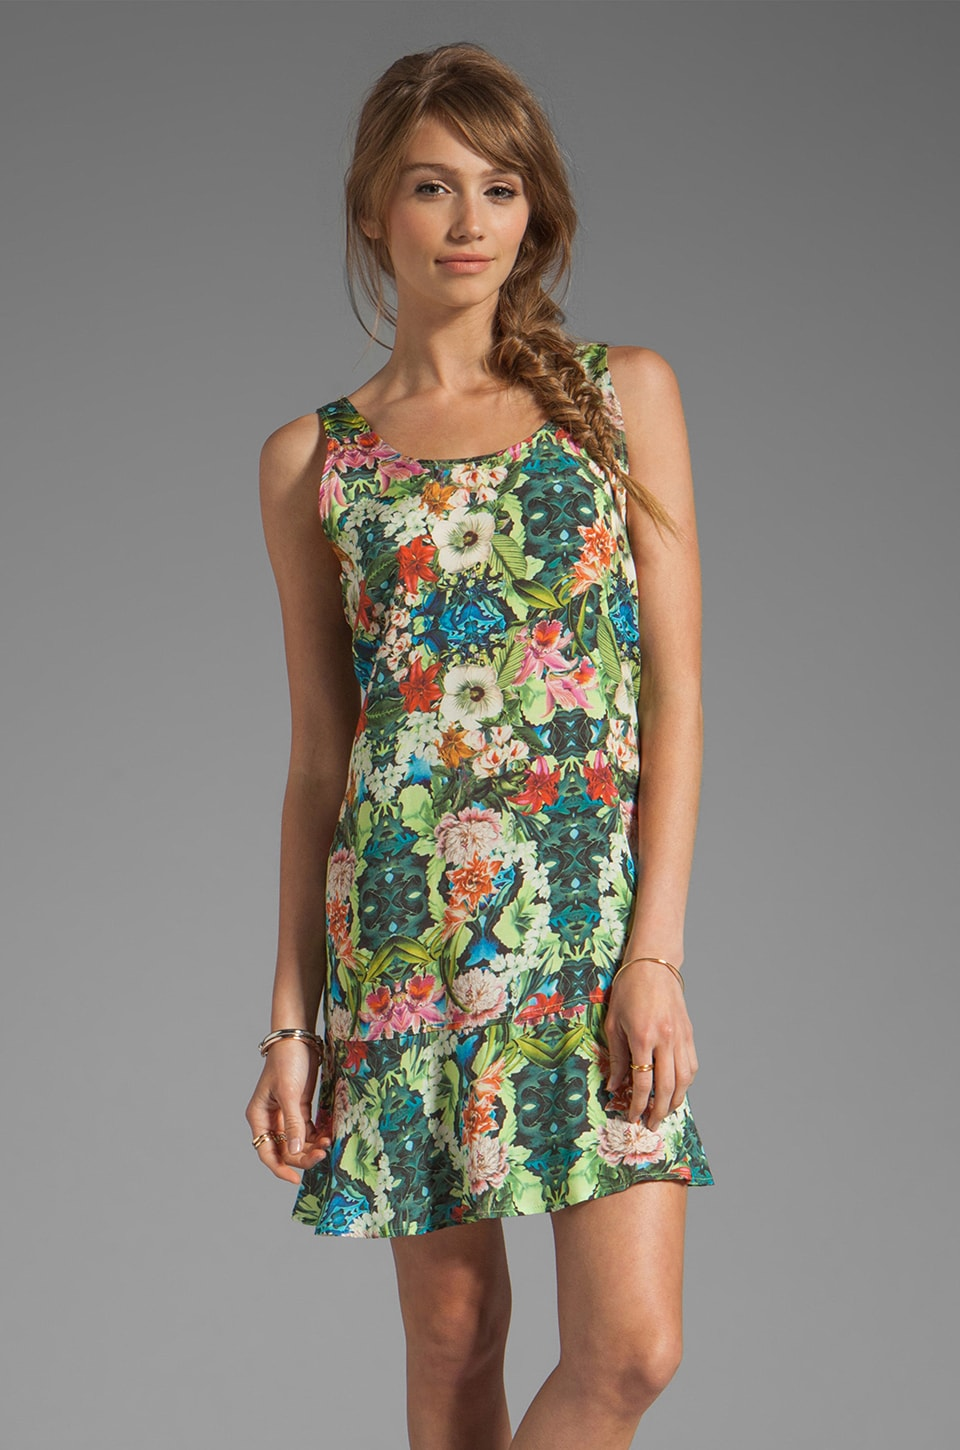 SAM&LAVI Hokulani Dress in Leilani Print